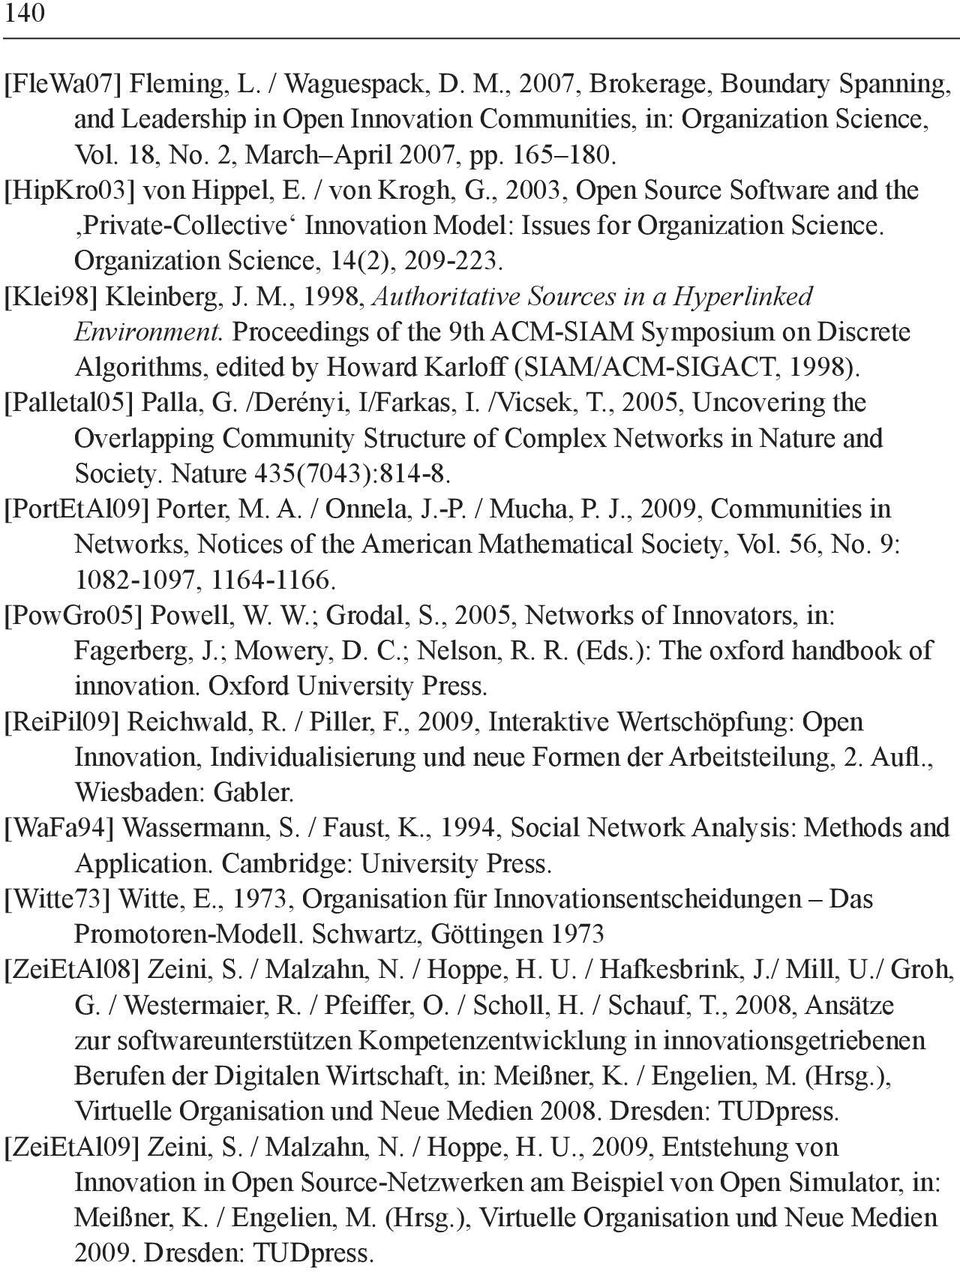 [Klei98] Kleinberg, J. M., 1998, Authoritative Sources in a Hyperlinked Environment. Proceedings of the 9th ACM-SIAM Symposium on Discrete Algorithms, edited by Howard Karloff (SIAM/ACM-SIGACT, 1998).